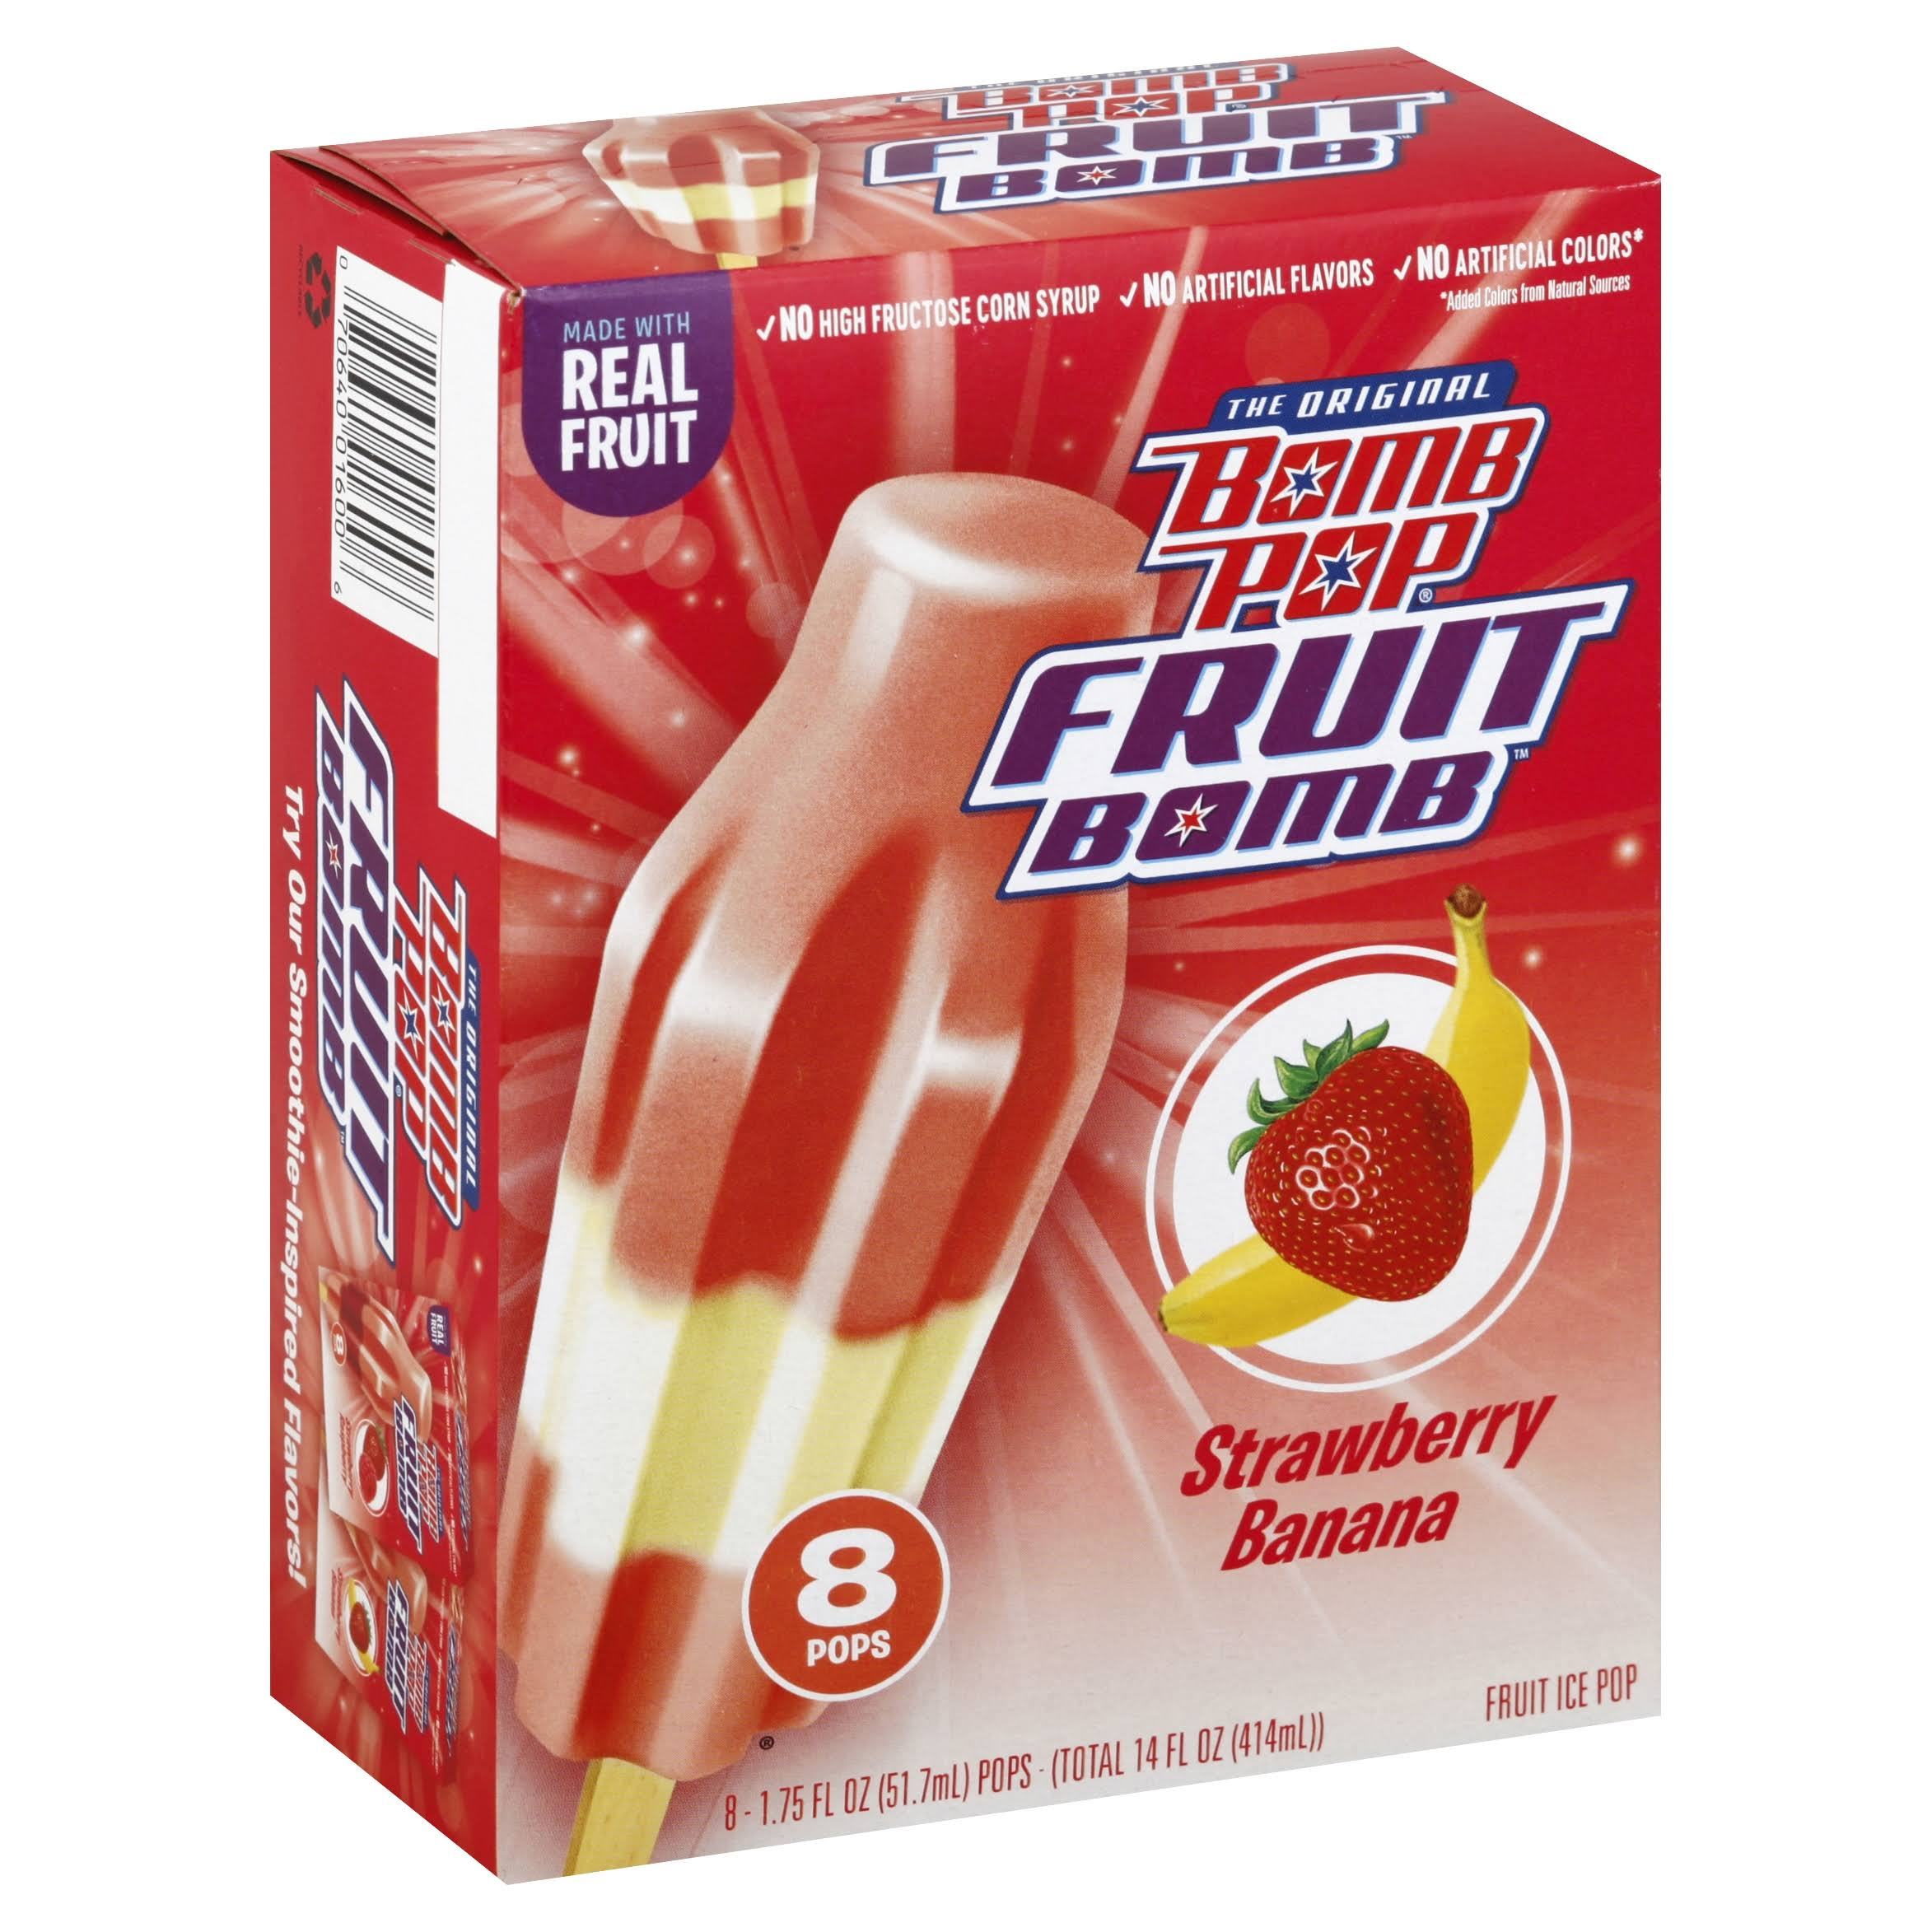 Bomb Pop Fruit Bomb, Strawberry Banana - 8 pack, 1.75 fl oz pops